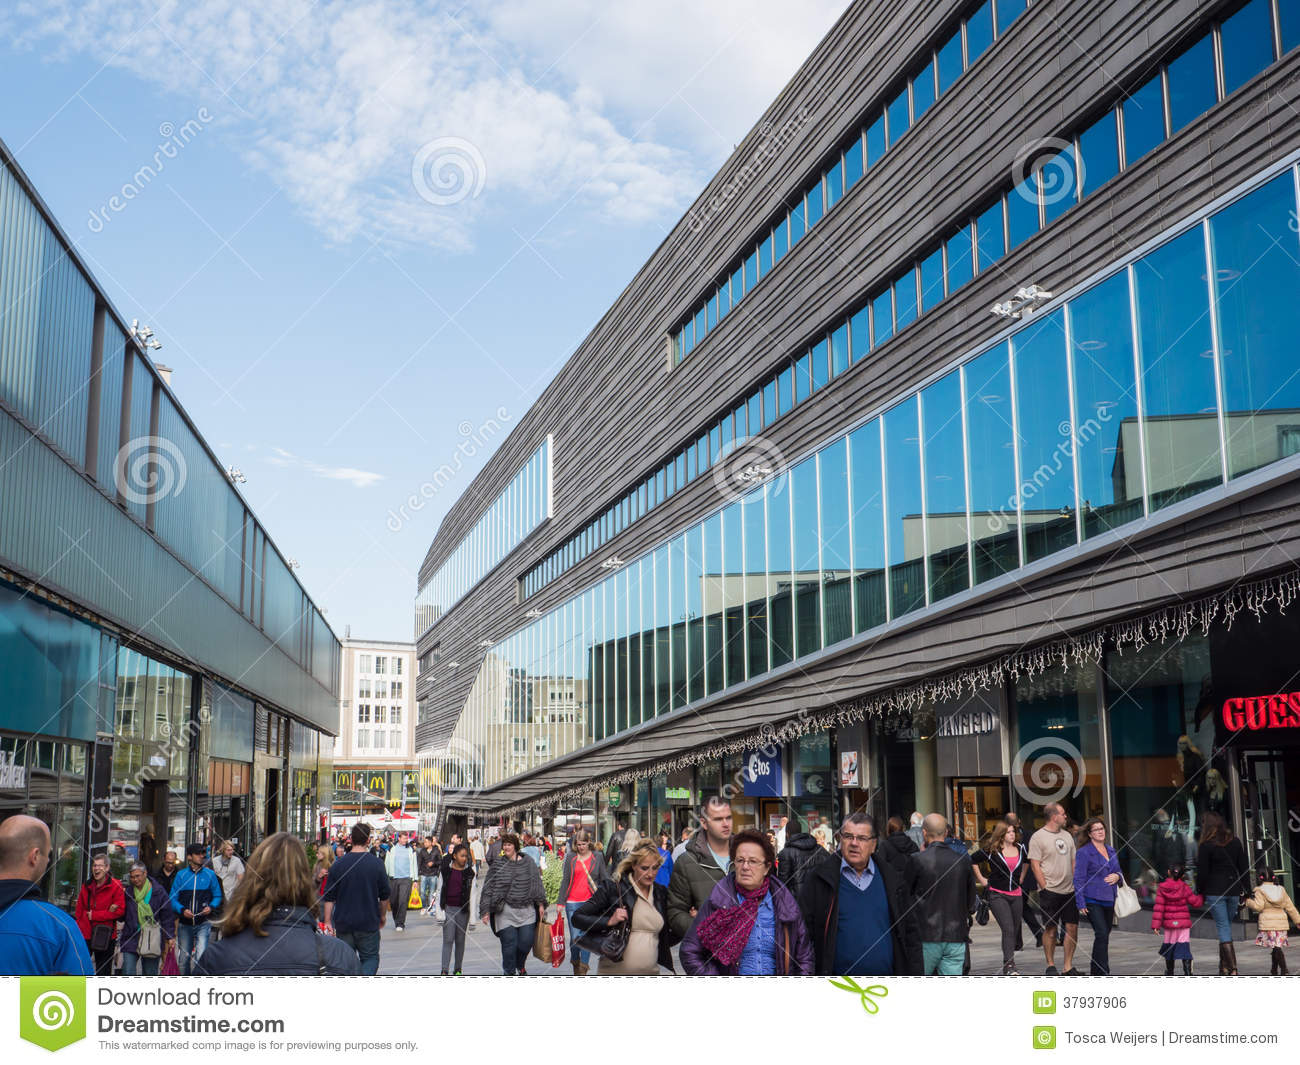 Almere Netherlands  city photos gallery : ALMERE, NETHERLANDS 26 OCT. 2013: People shopping in the modern city ...